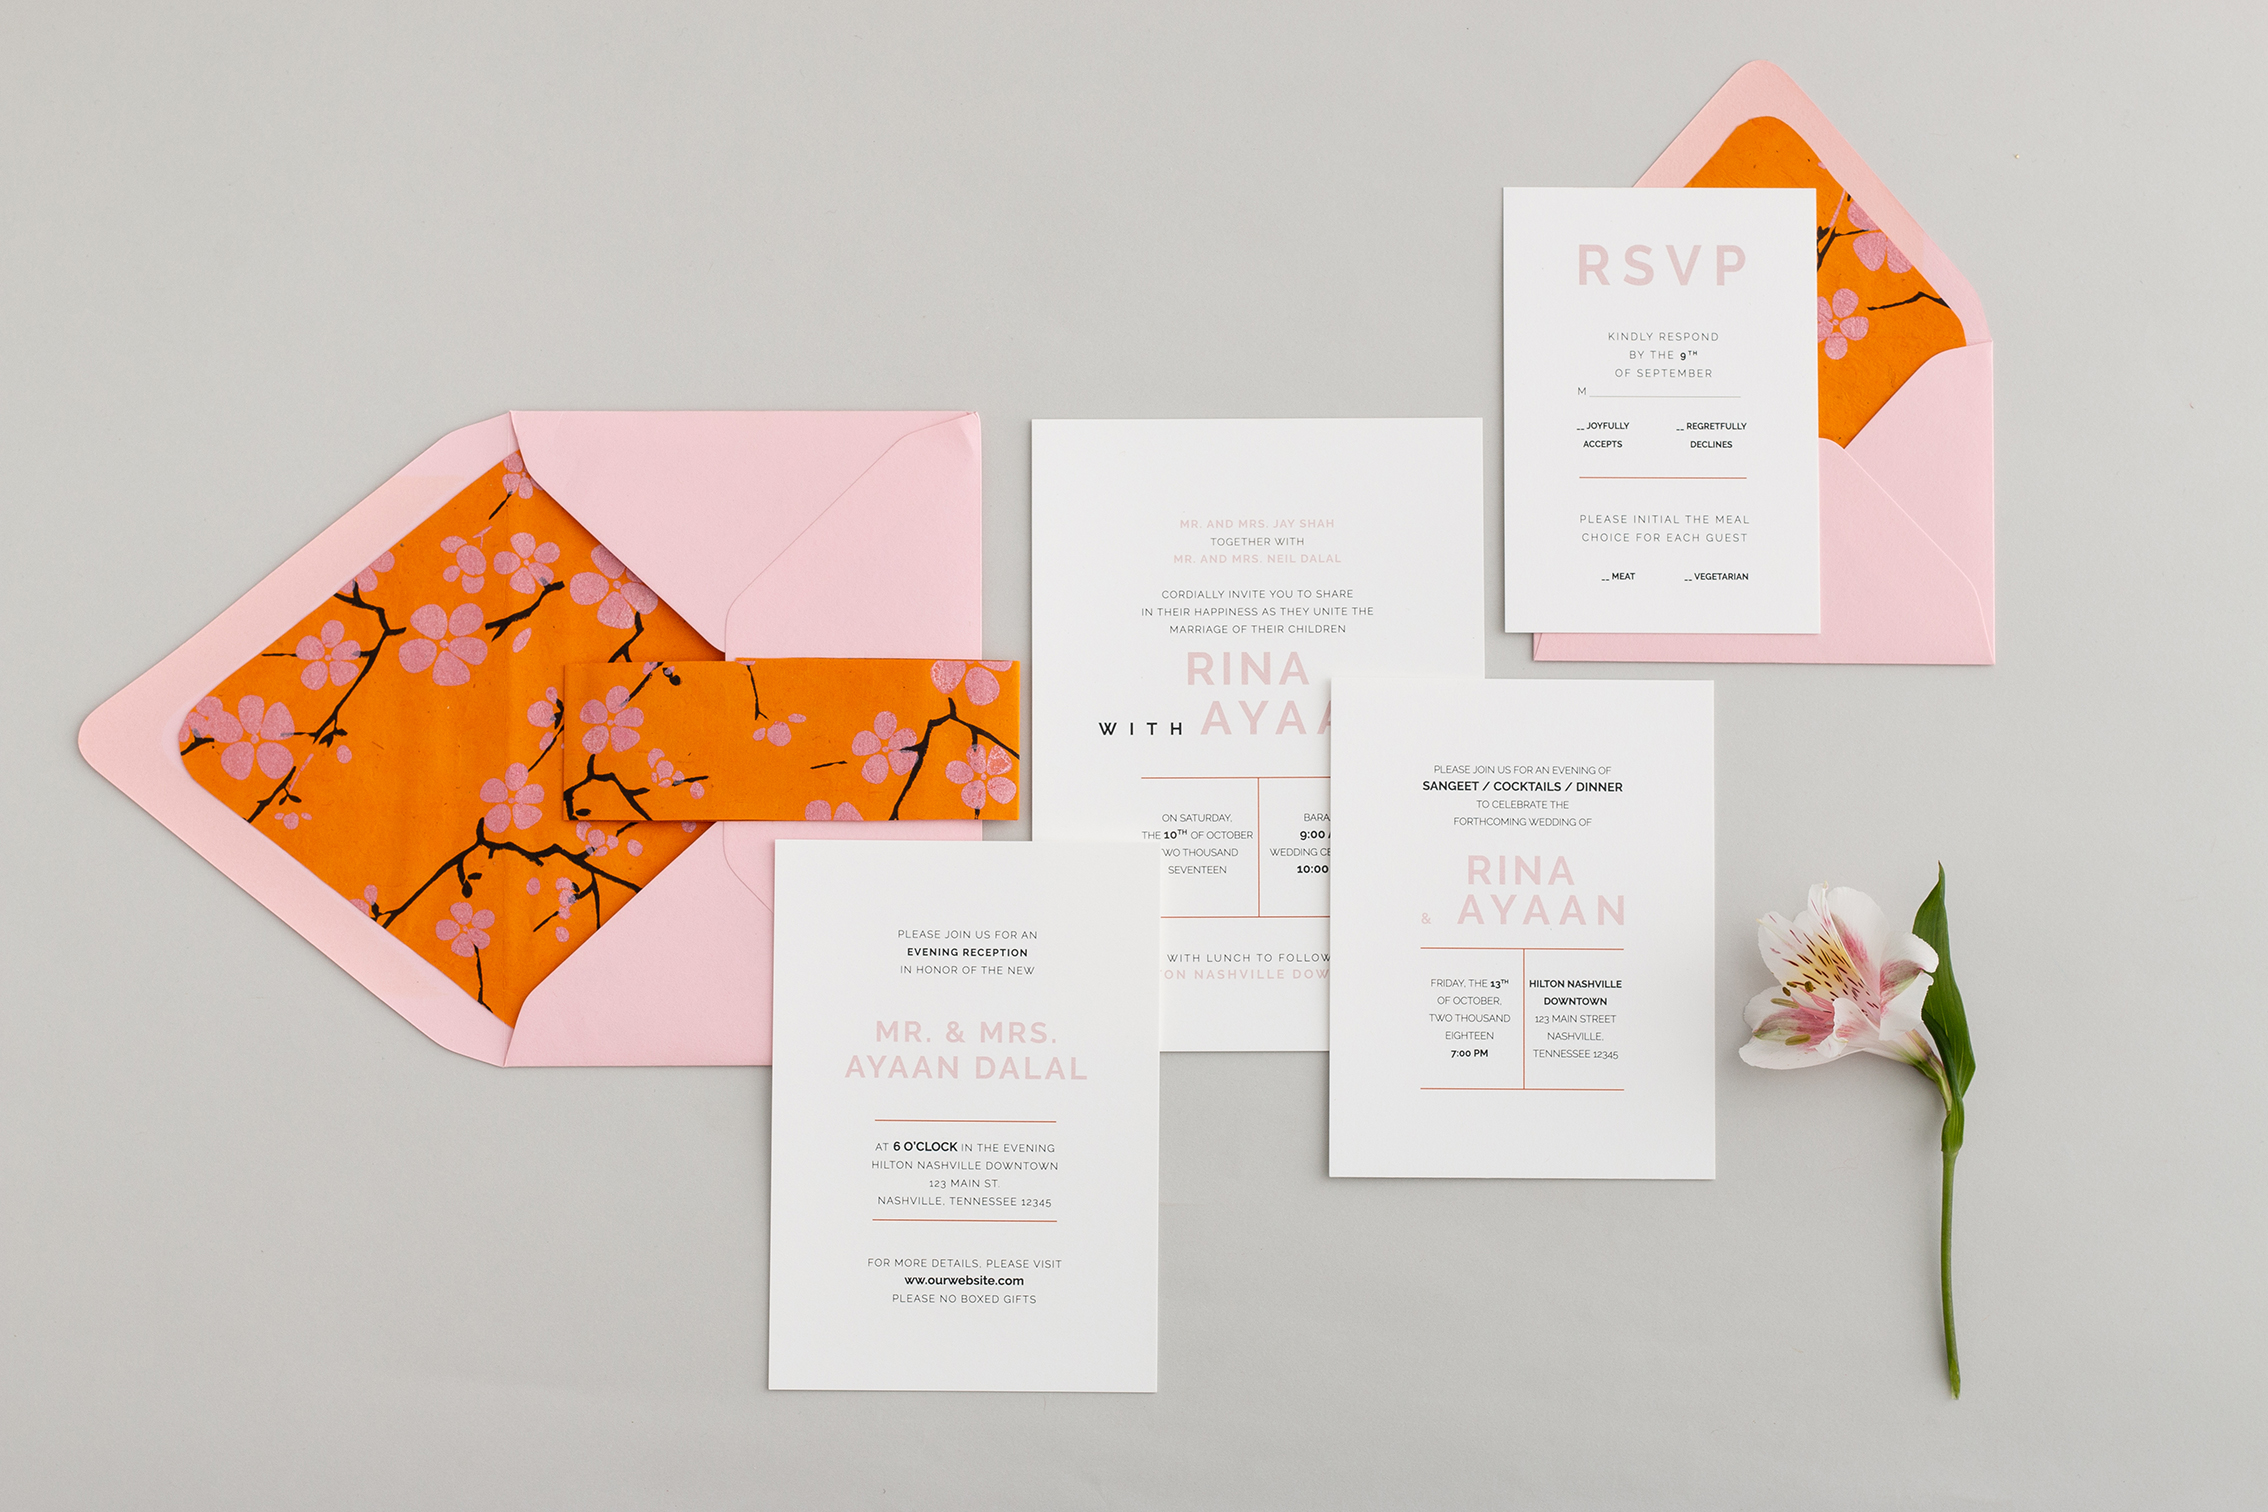 Lotus Collection - Simple, elegant, and bold, the Lotus Collection offers a variety of minimalist designs for the modern bride. Clean lines with pops of color, these invitations reflect your contemporary style in a timeless fashion.